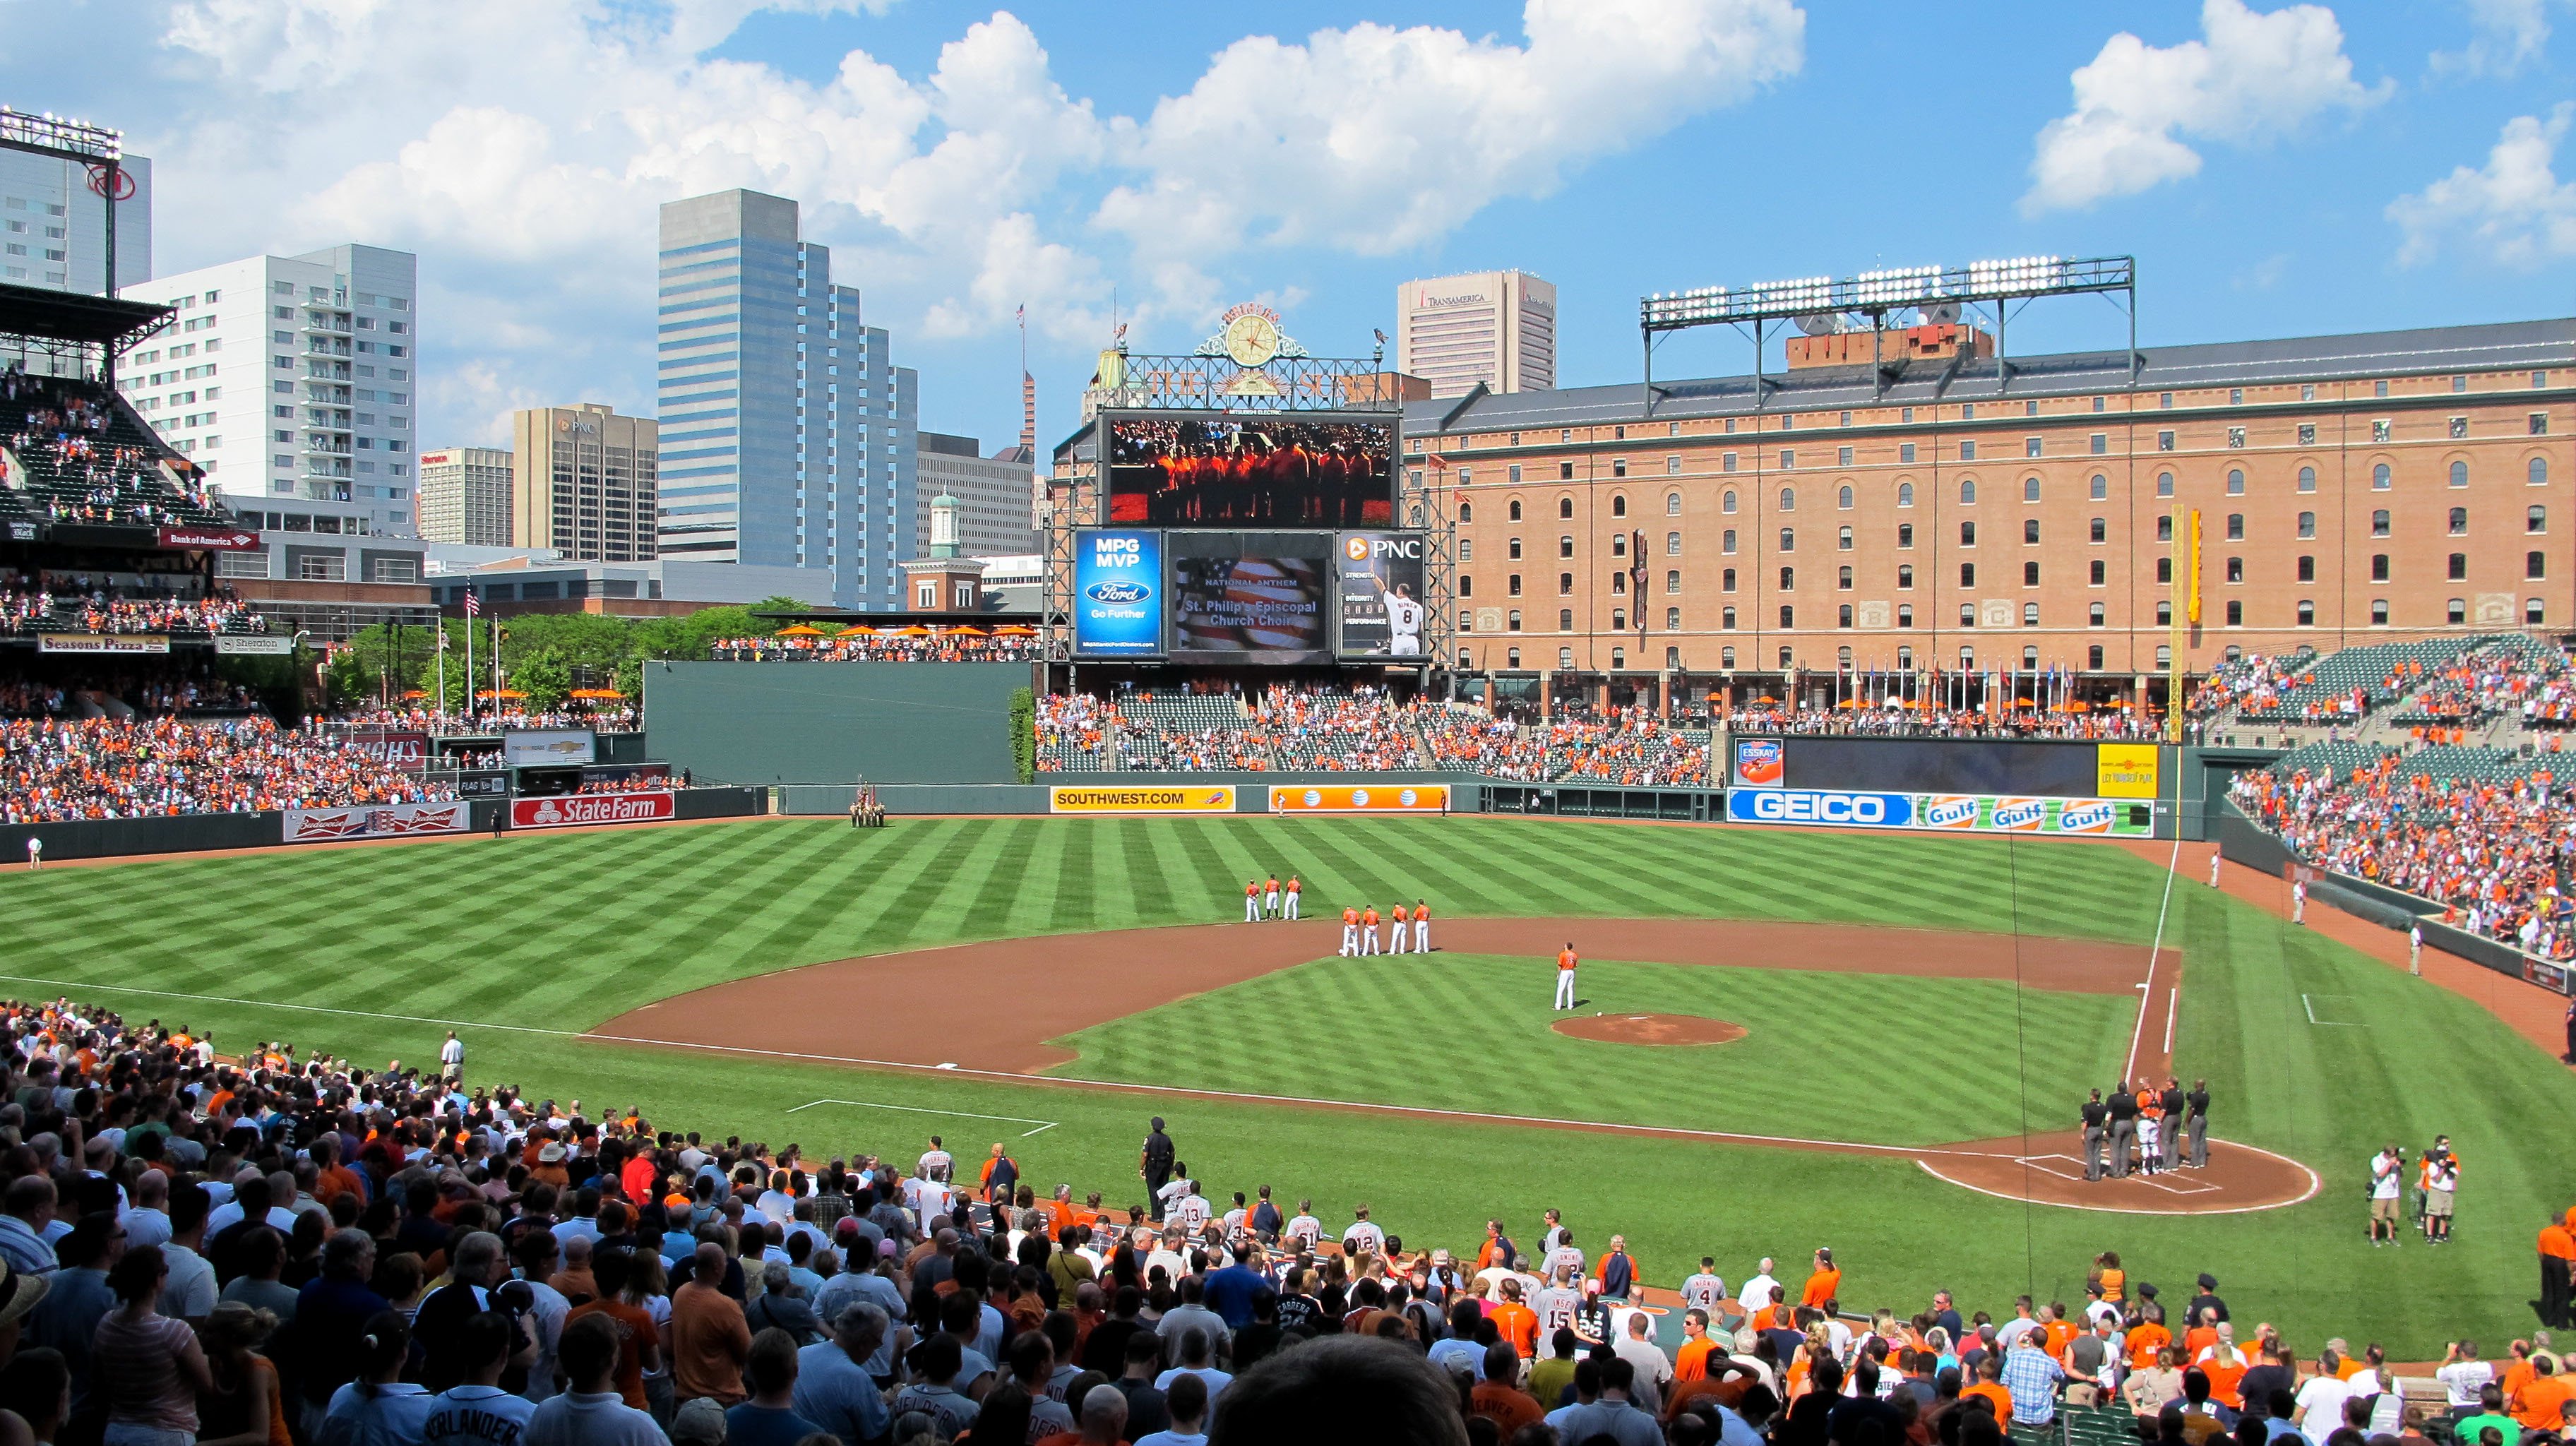 Oriole park at camden yards wikiwand for The camden